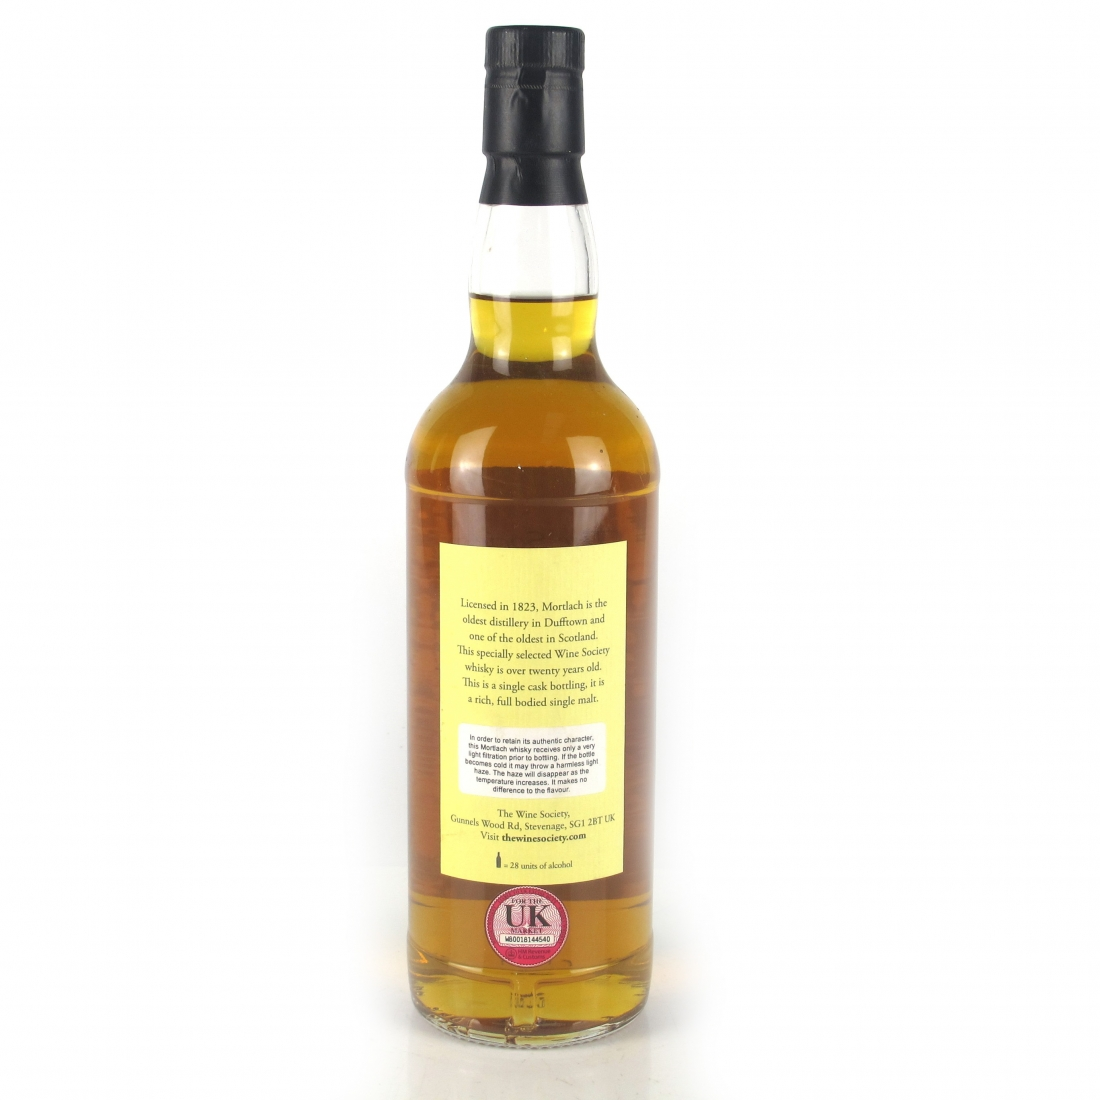 Mortlach 20 Year Old / The Wine Society